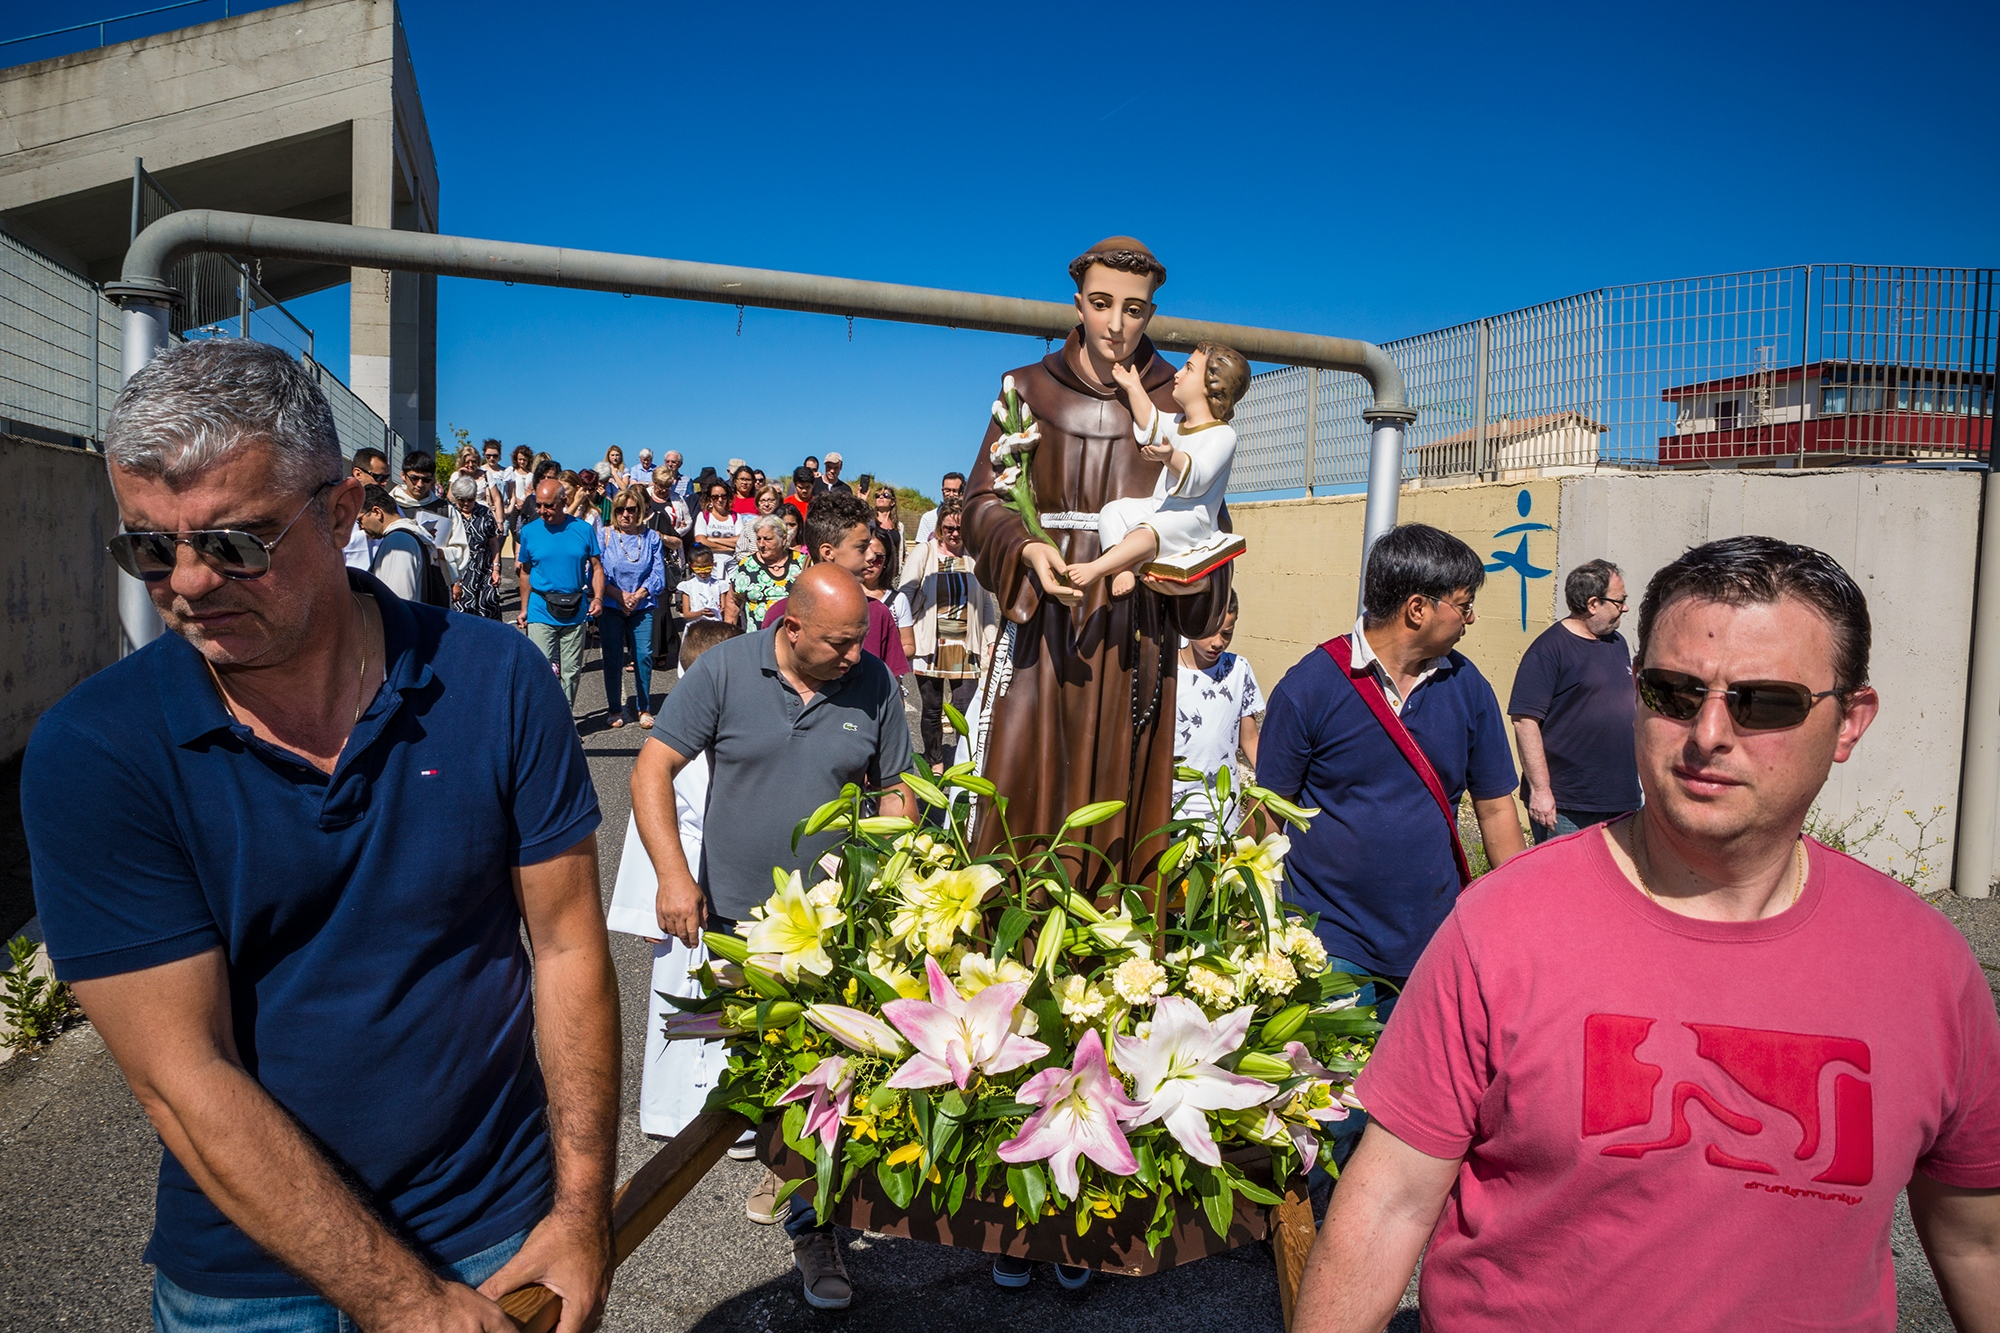 Residents celebrating the annual patron saint day